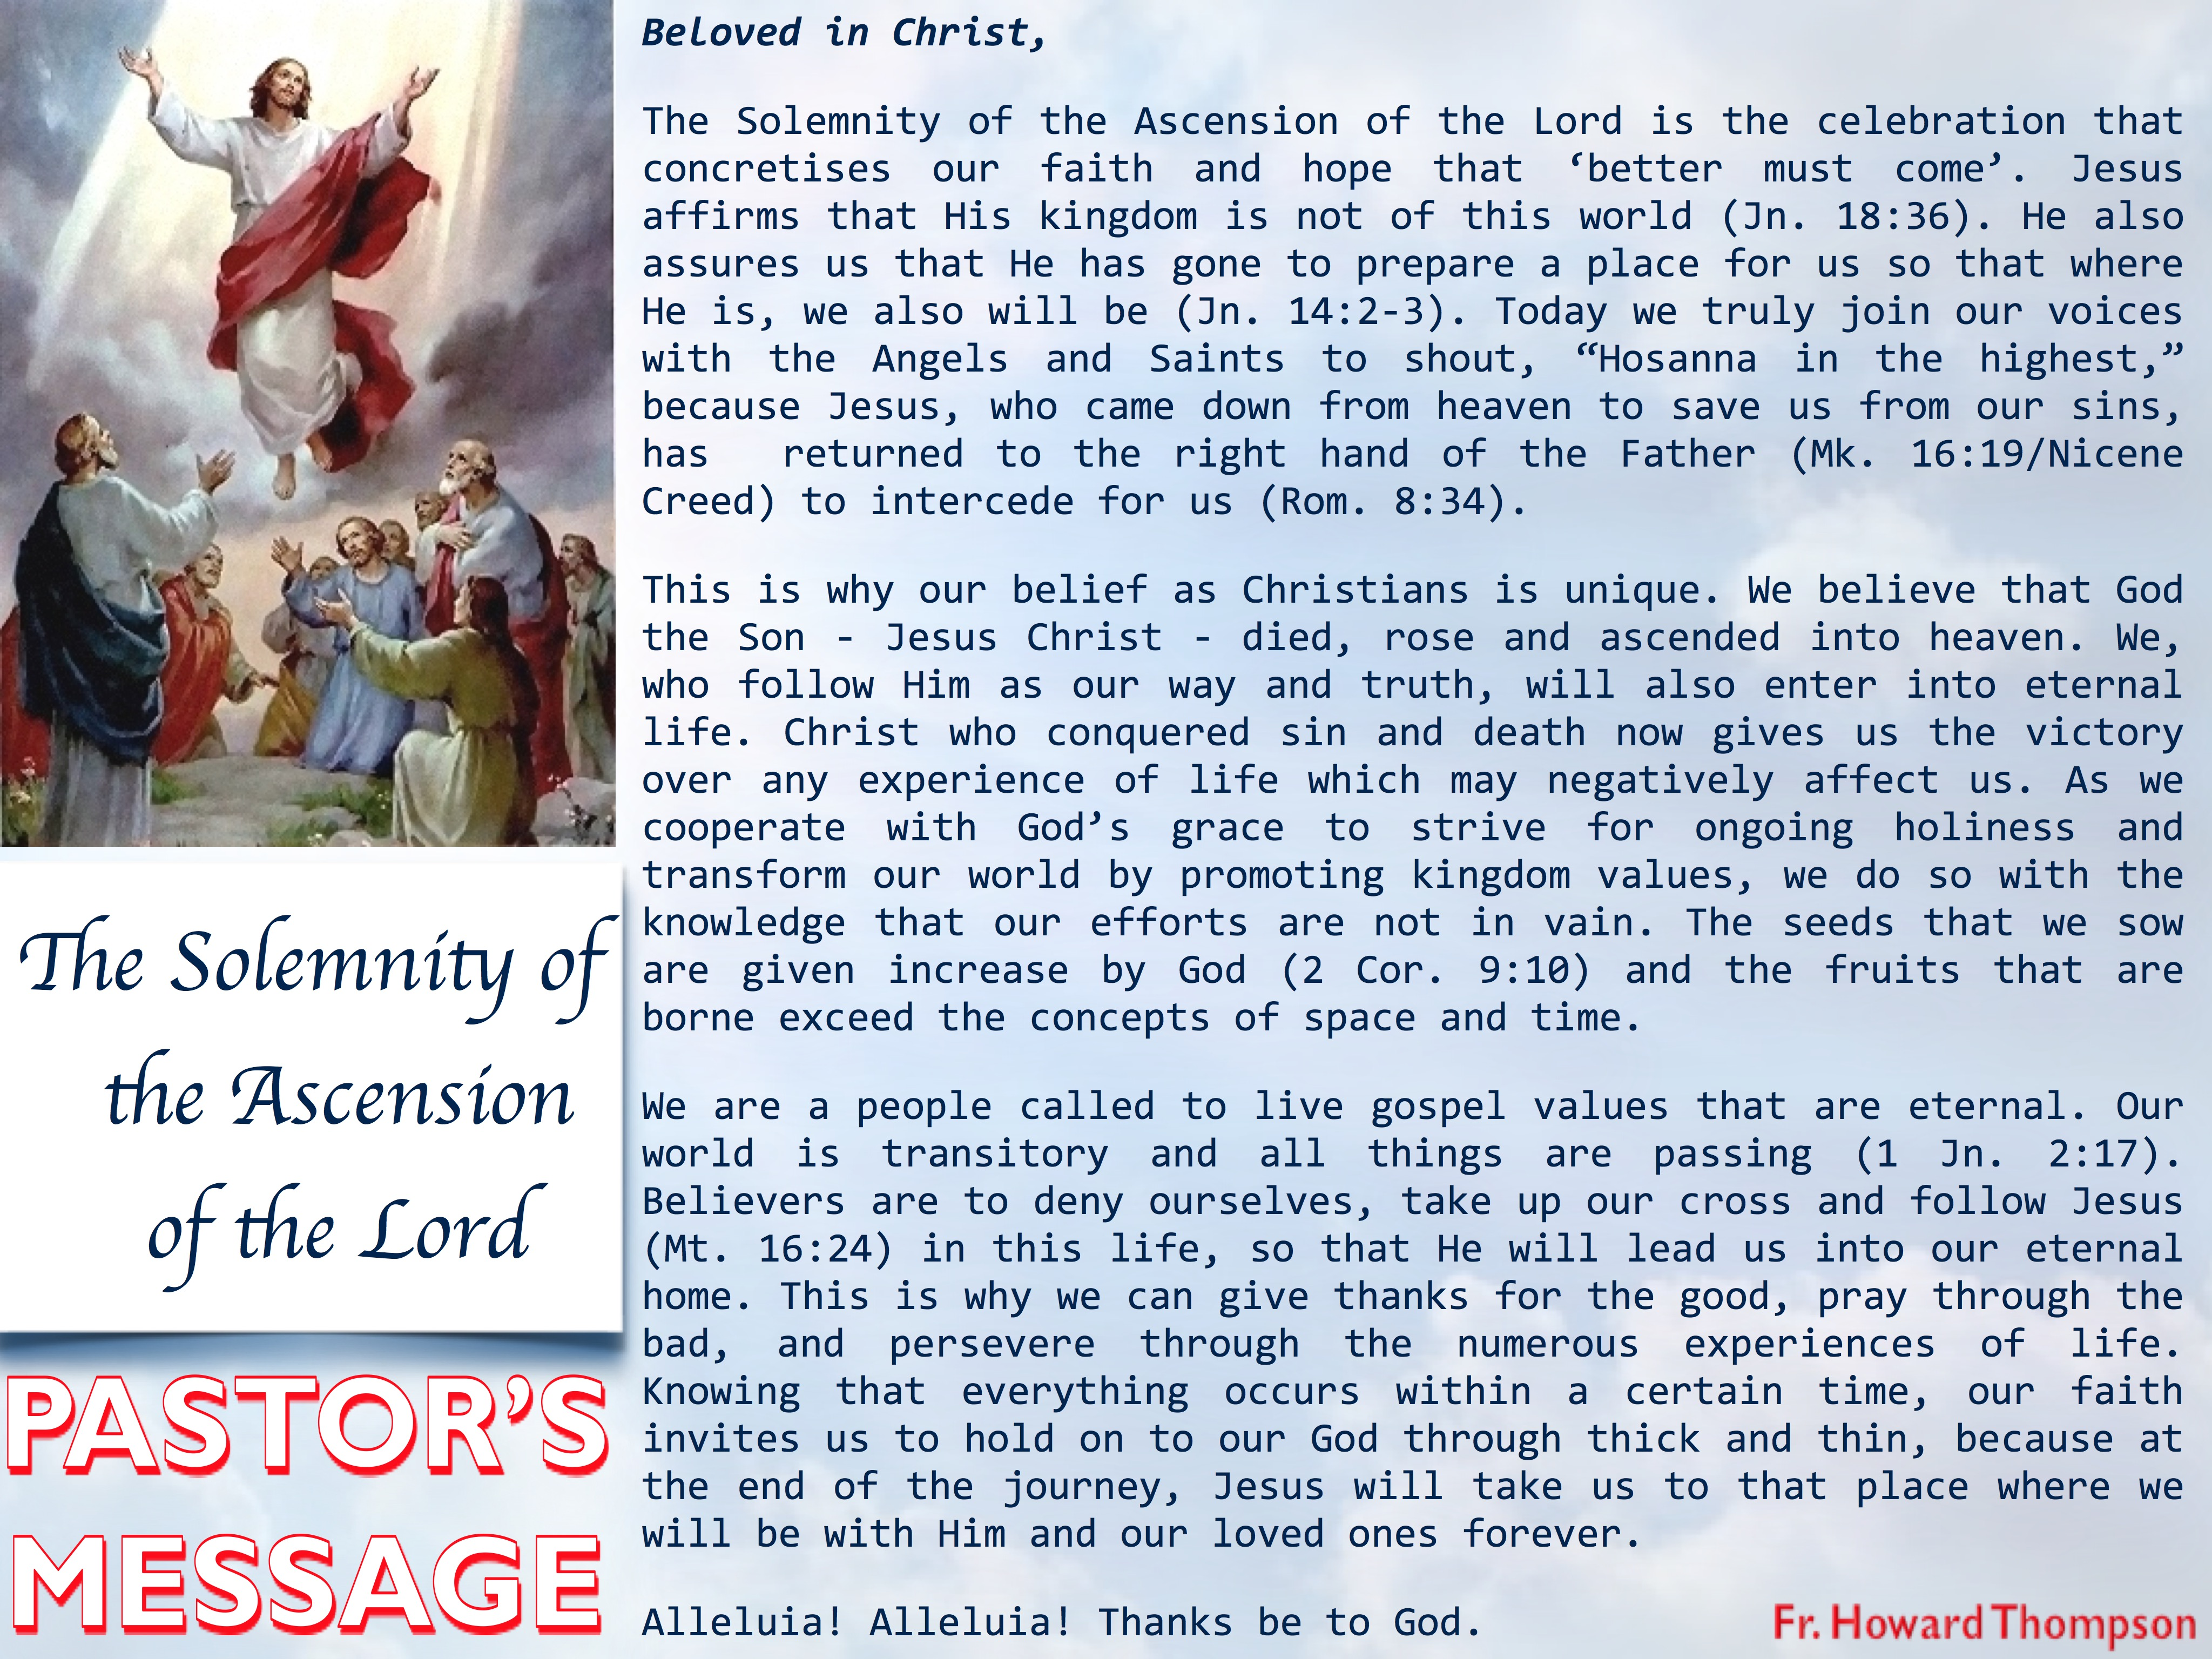 Pastor's Message - 13 The Ascension of the Lord